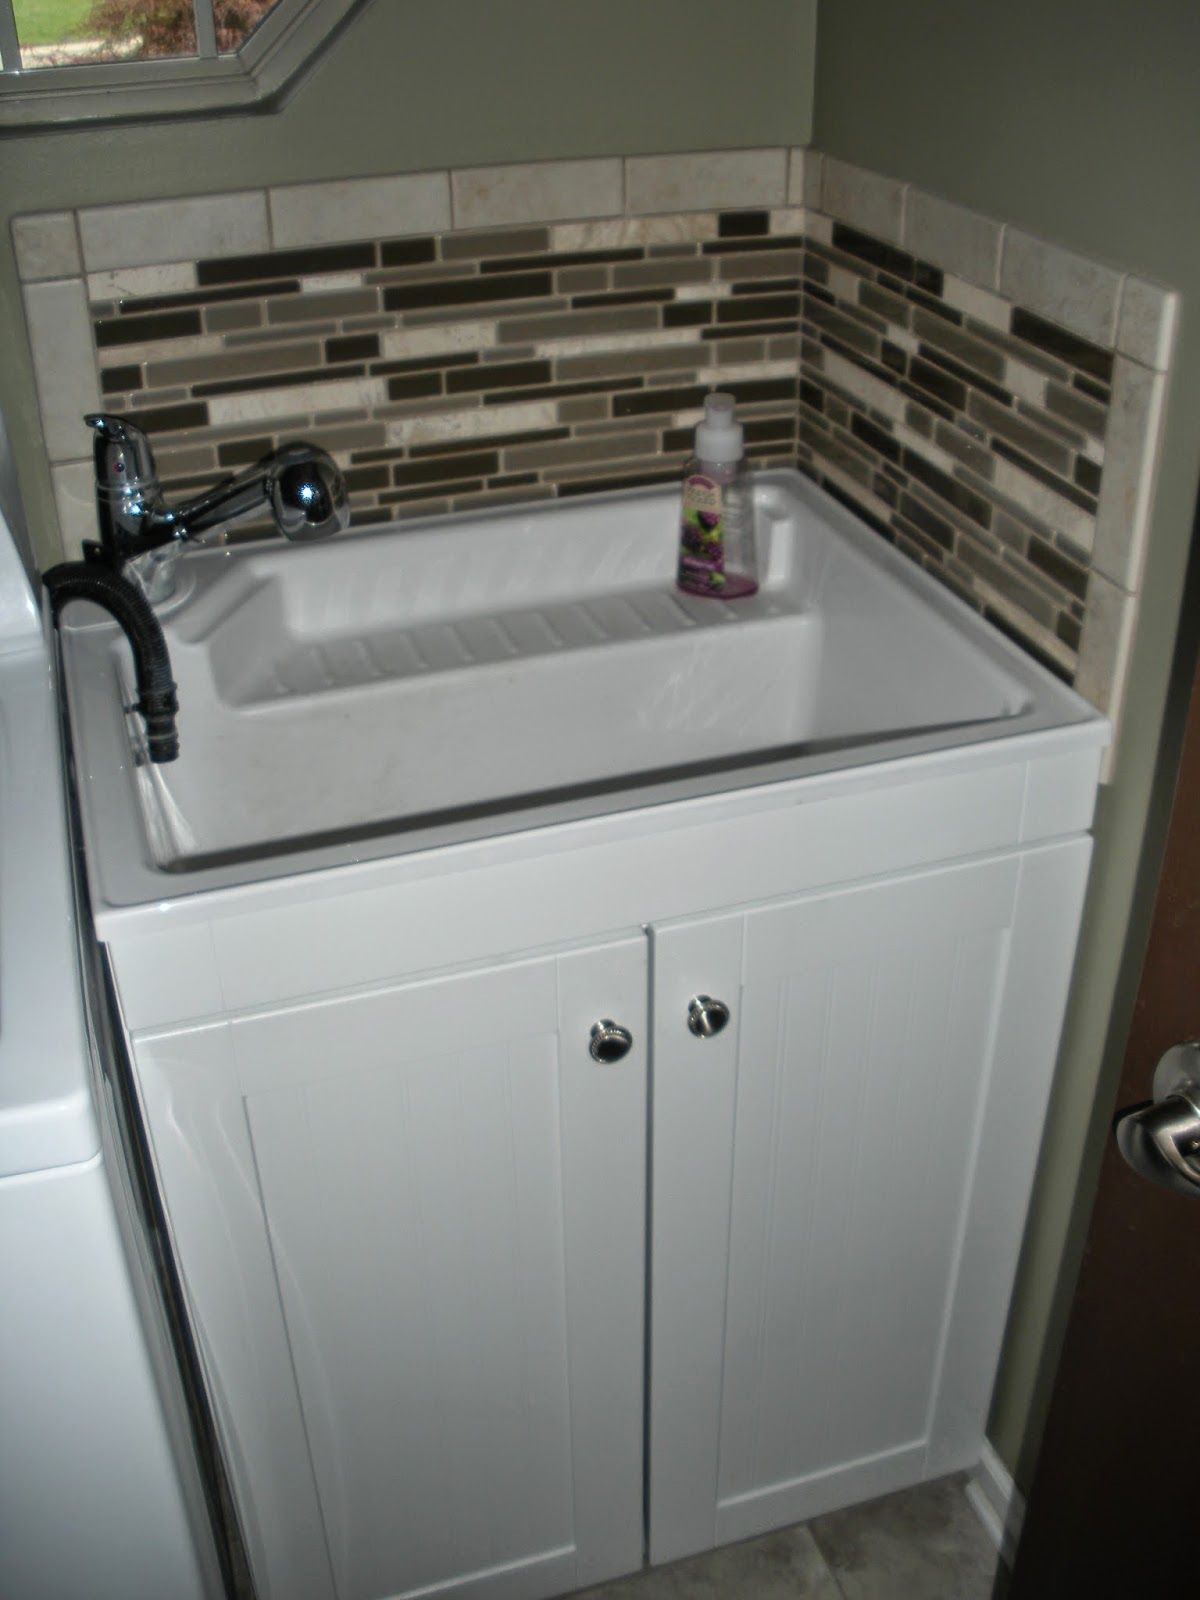 utility sink in laundry room add tile backsplash to avoid paint splatters and other mess house diy pinterest tile sinks and laundry rooms - Utility Sink Backsplash